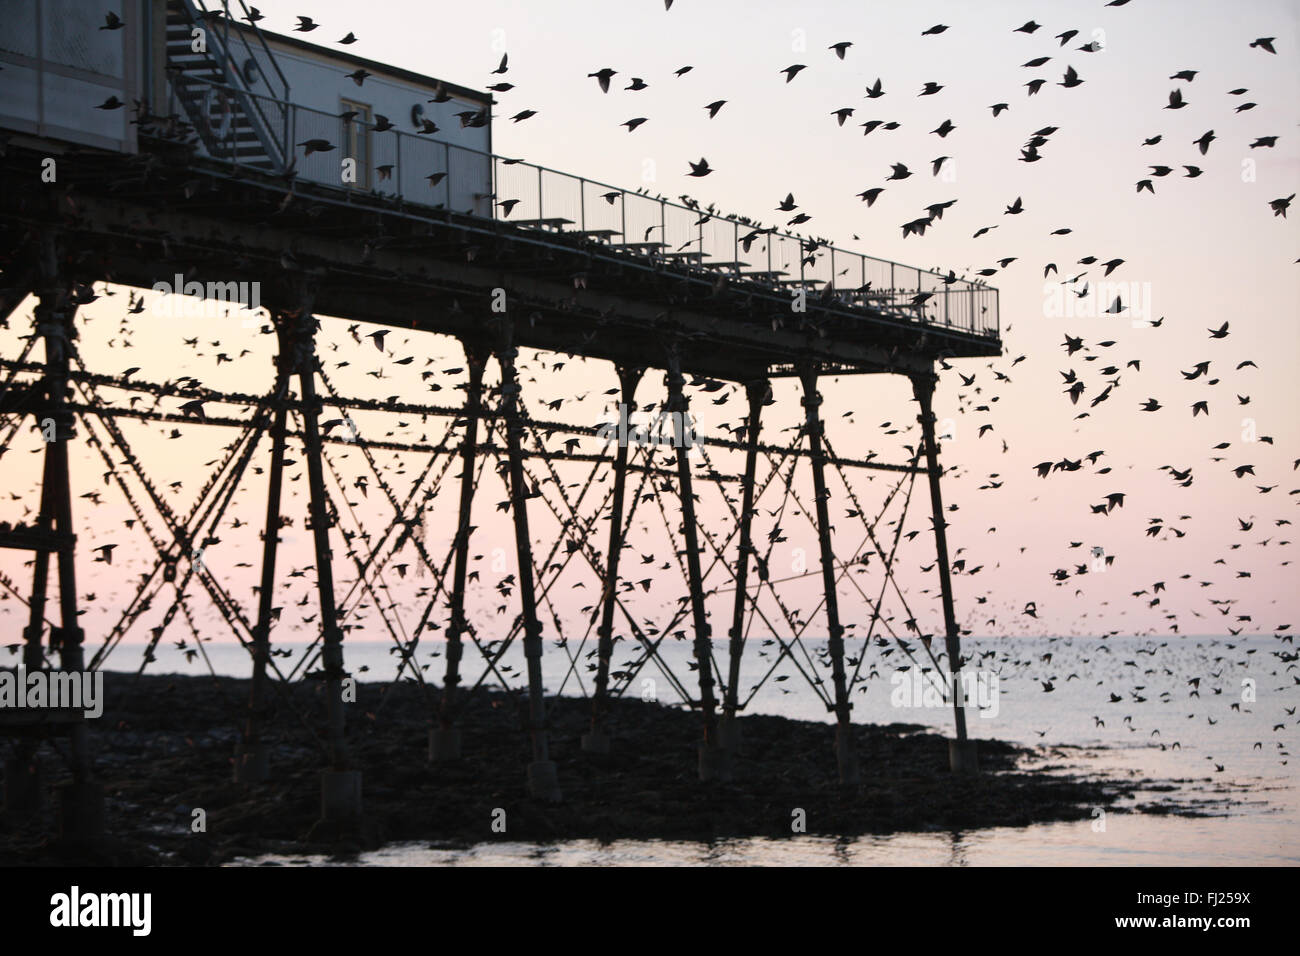 Aberystwyth, UK. 28th Feb, 2016. Starlings under pier at sunset in Aberystwyth, UK. 28th Feb, 2016. Starlings under Stock Photo